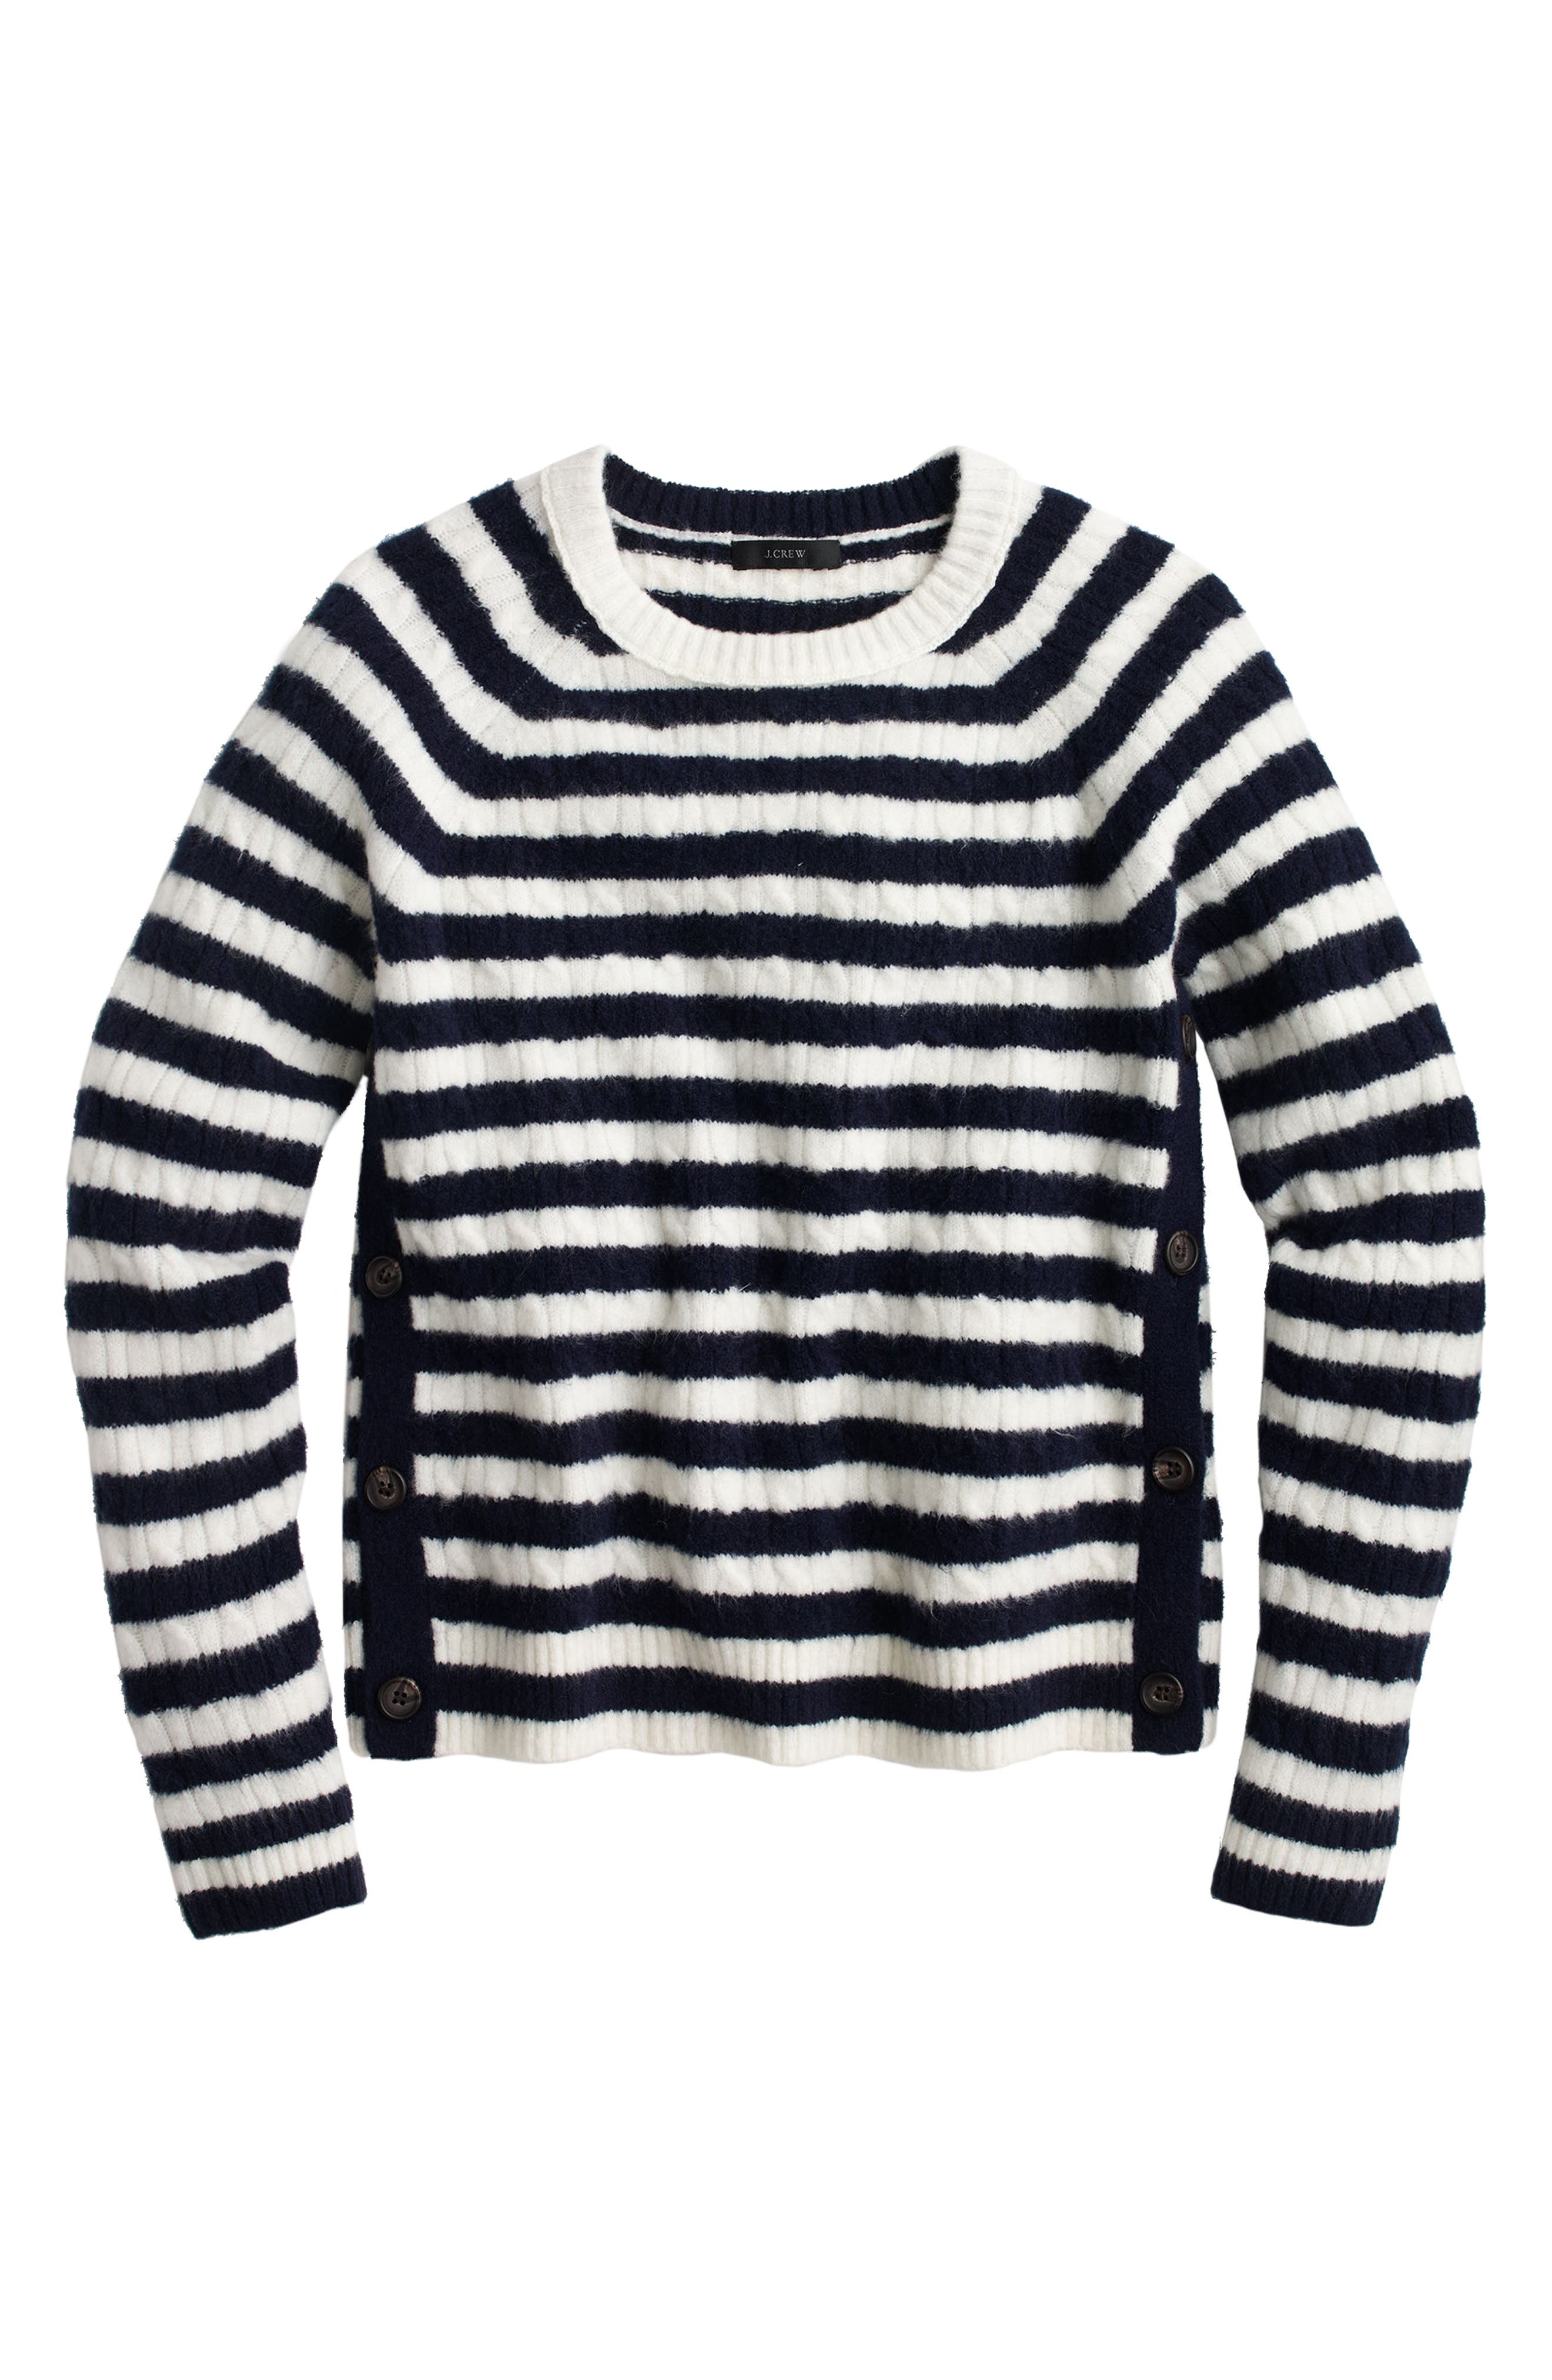 J.Crew Stripe Cable Knit Sweater with Buttons,                             Alternate thumbnail 3, color,                             Navy Natural